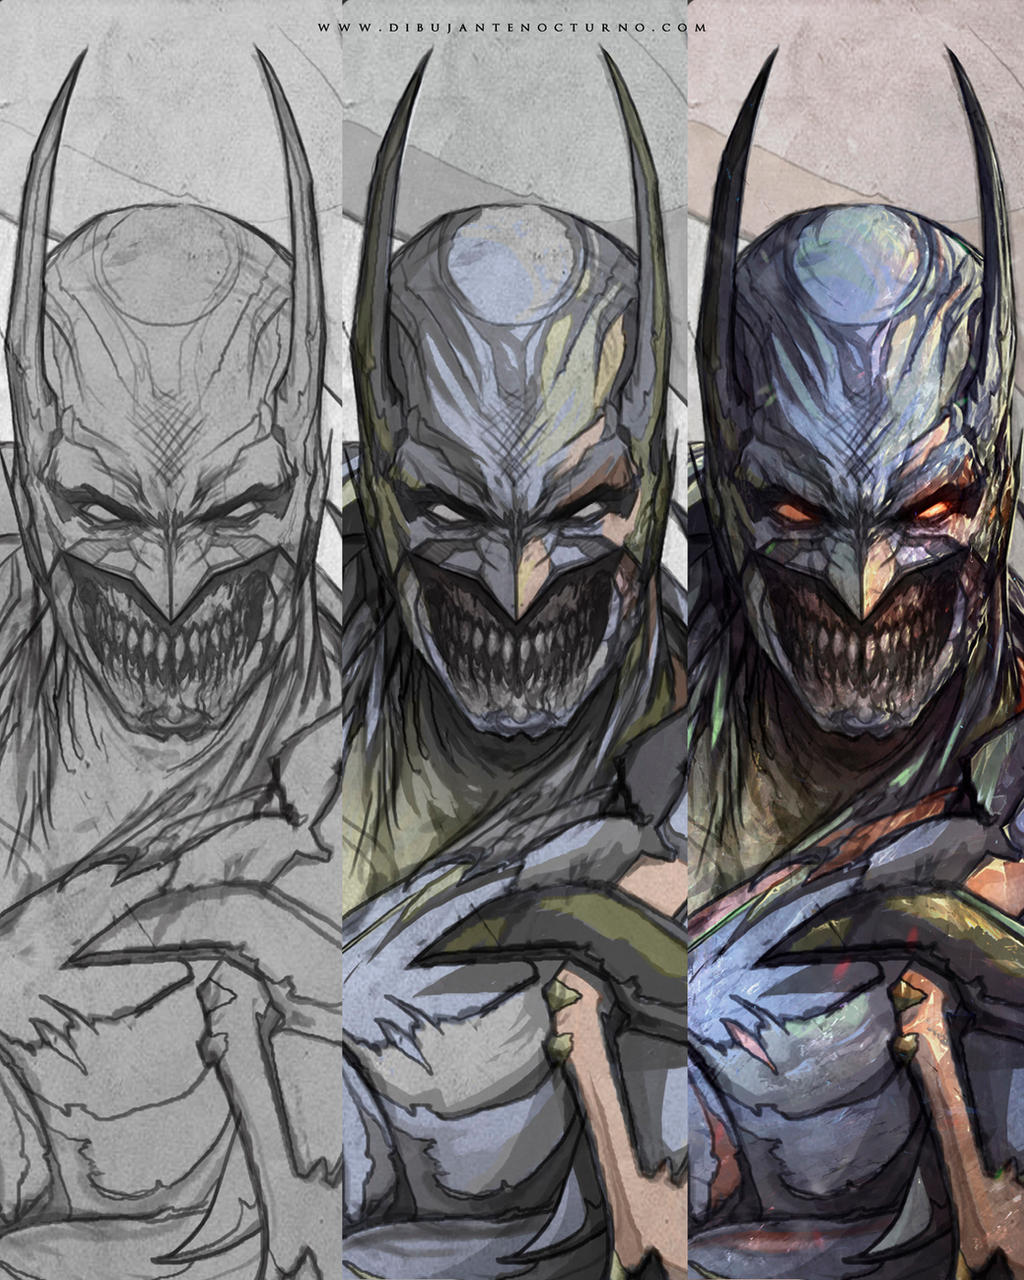 Process by Dibujante-nocturno on DeviantArt